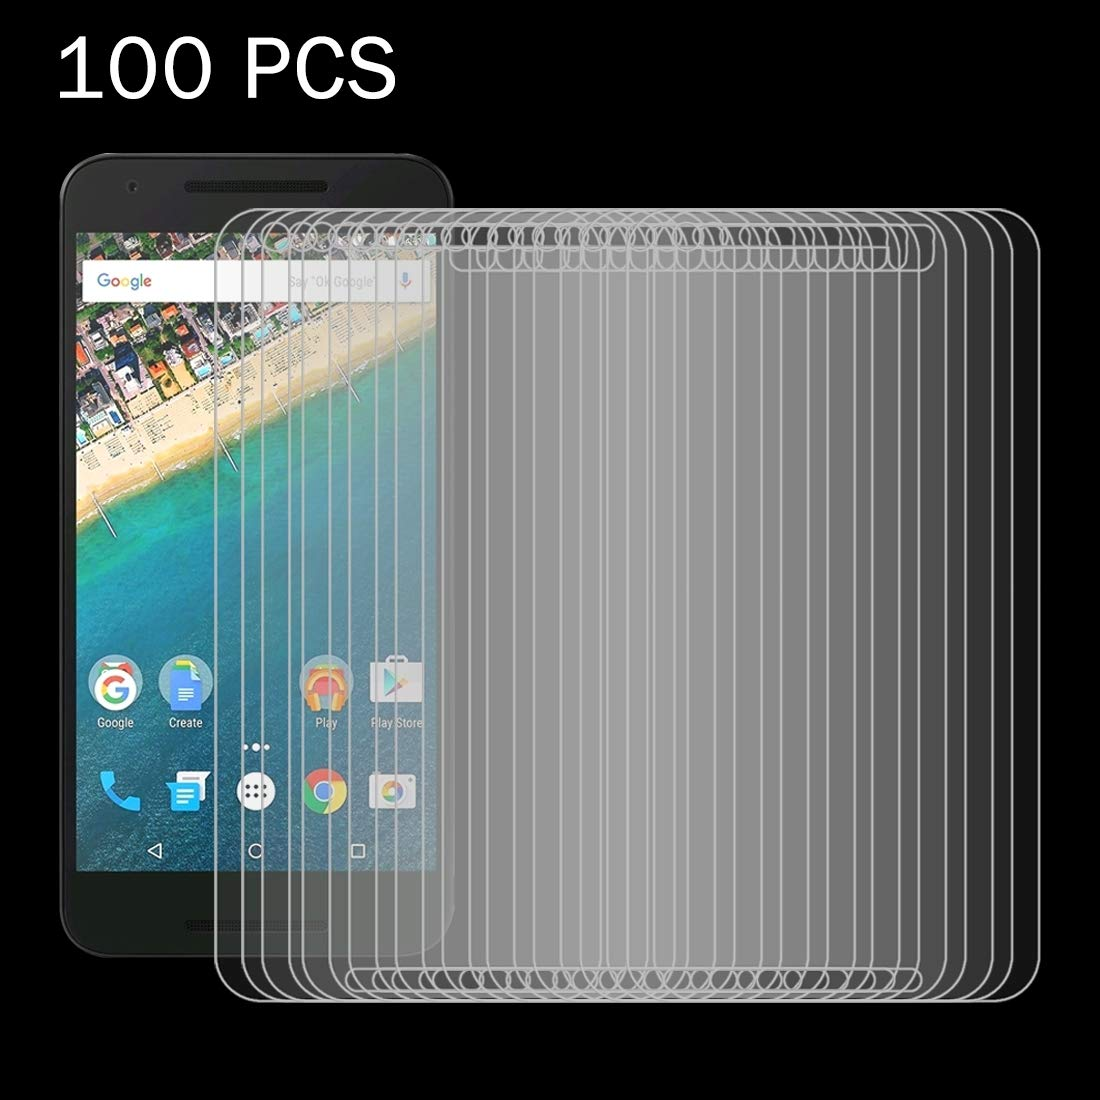 KANEED Tempered Glass Film, 100 PCS for Google Nexus 5X 0.26mm 9H Surface Hardness 2.5D Explosion-Proof Tempered Glass Screen Film